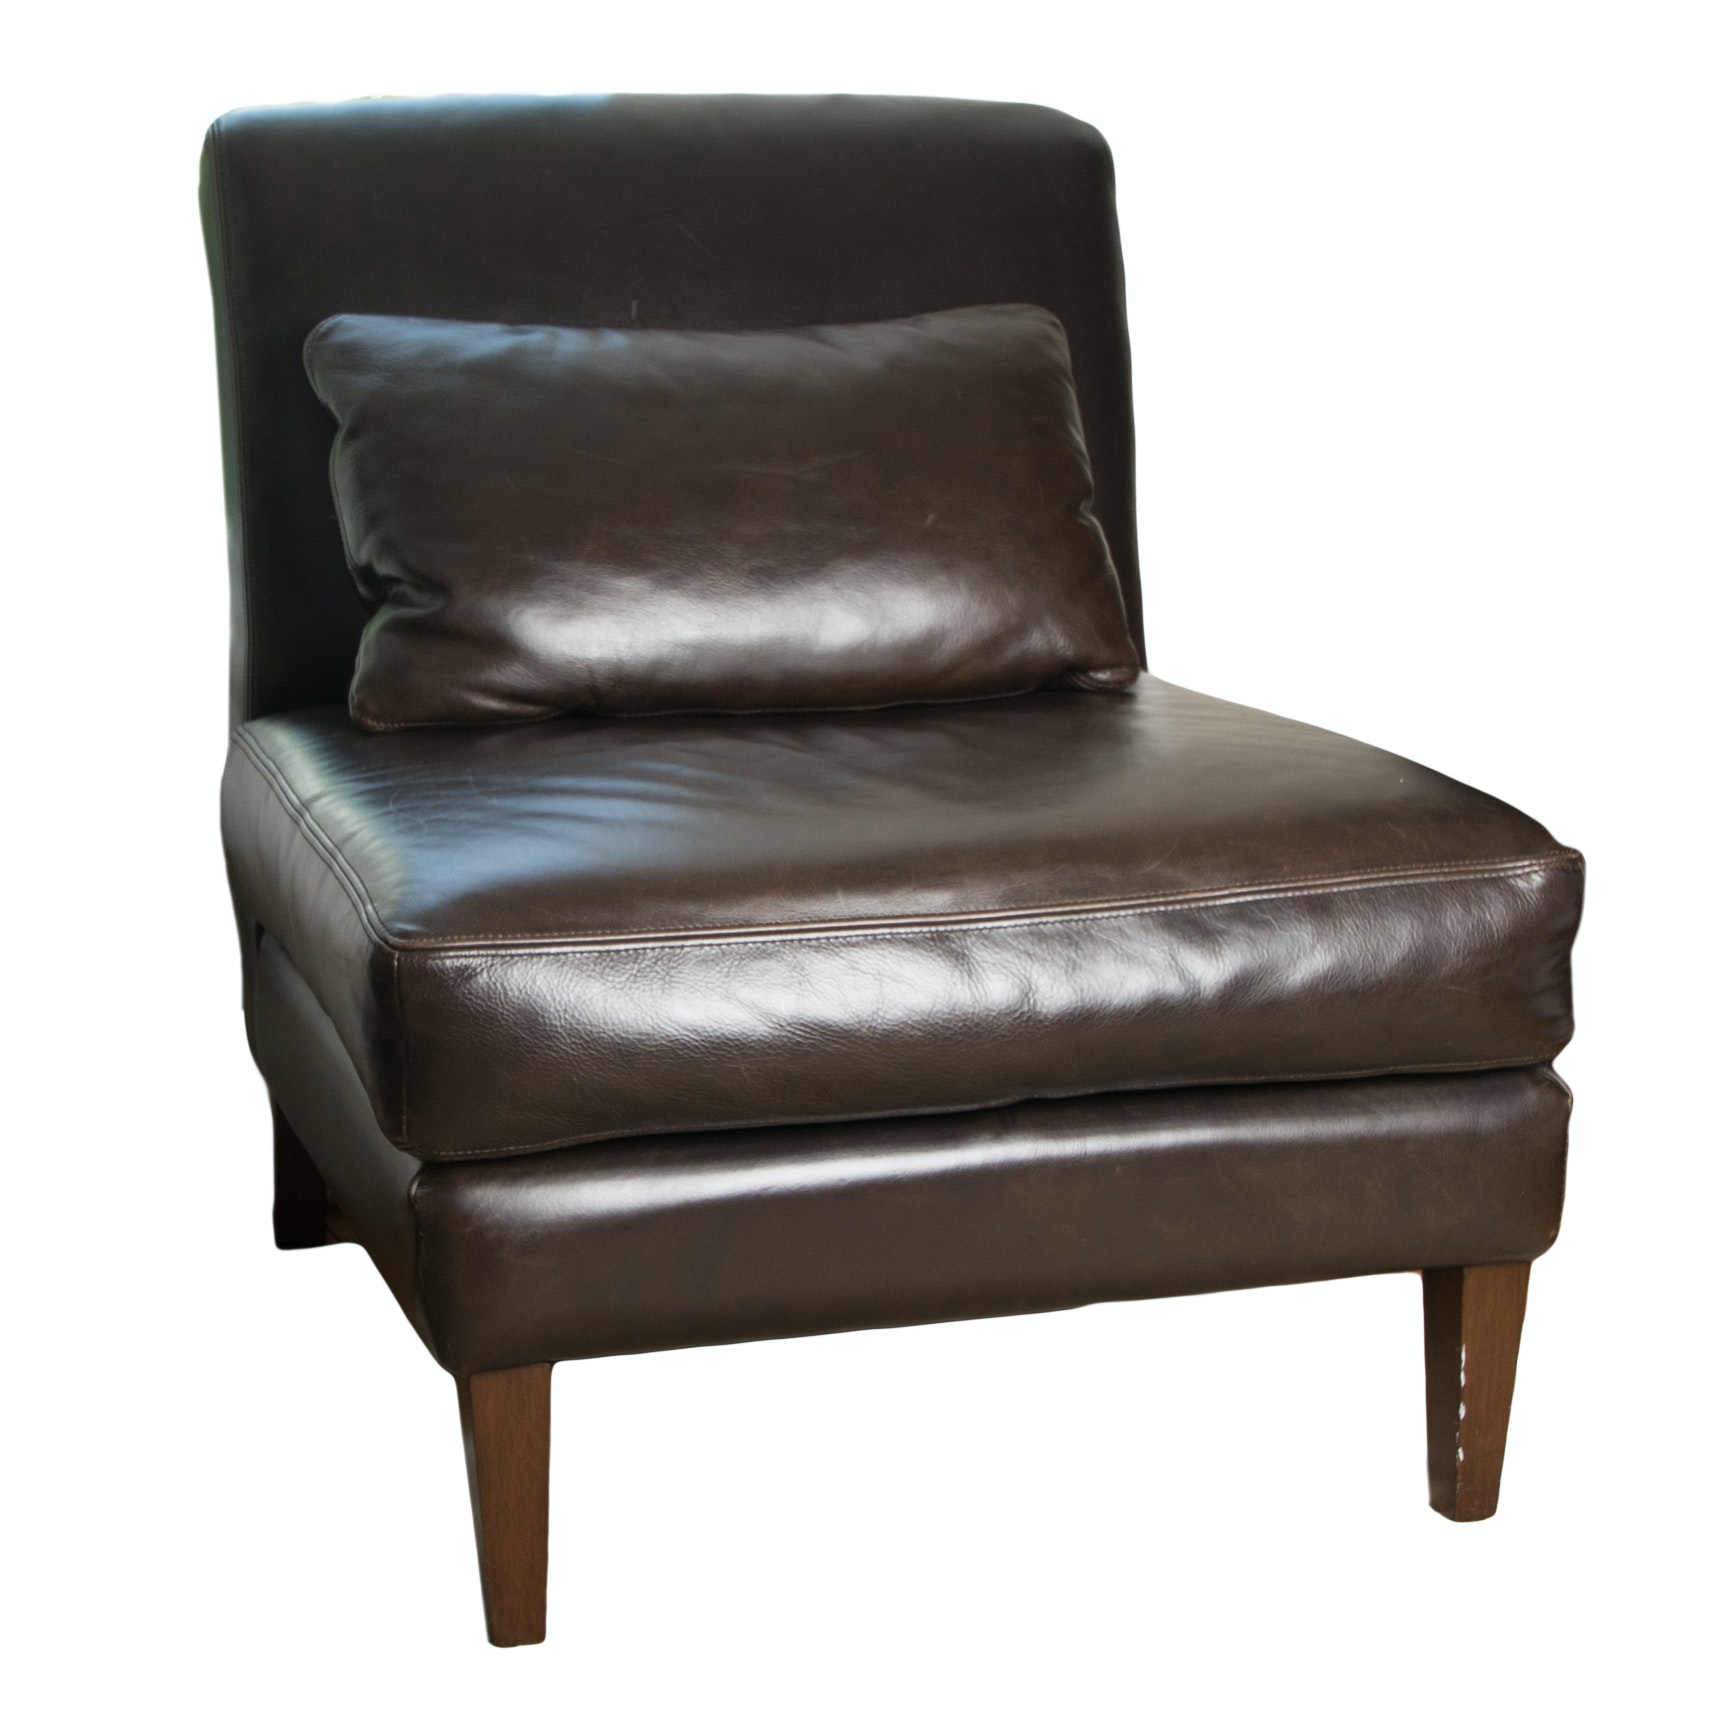 Pottery Barn Turner Leather Chair ...